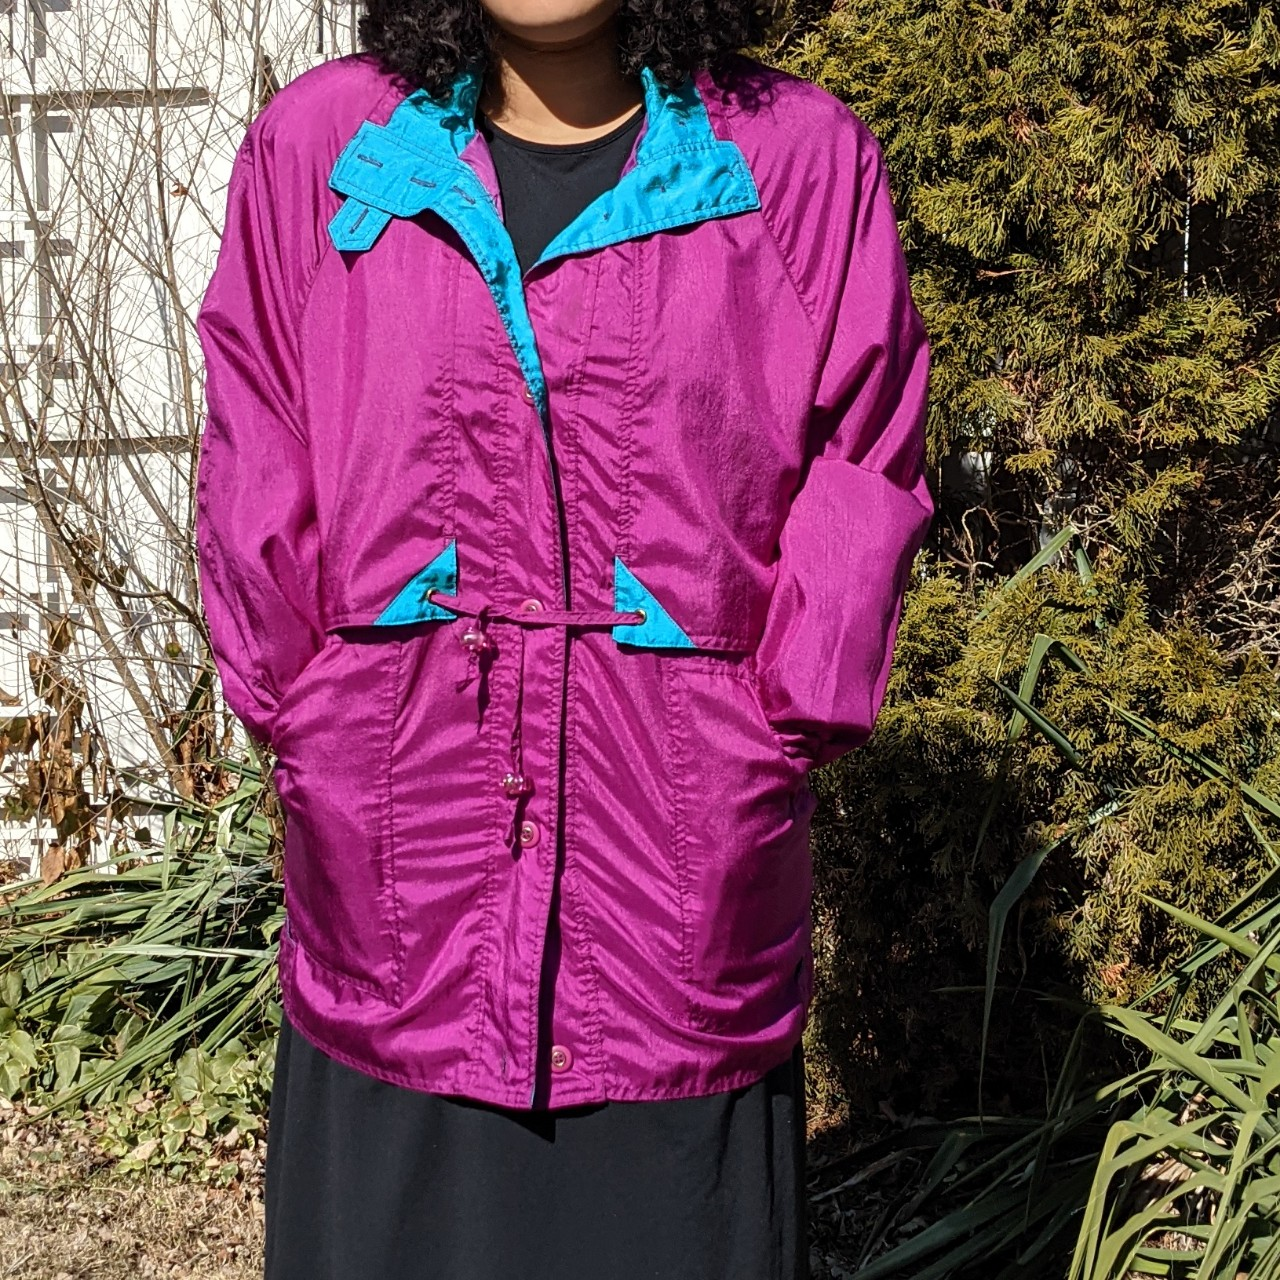 Product Image 1 - Super light spring jacket by